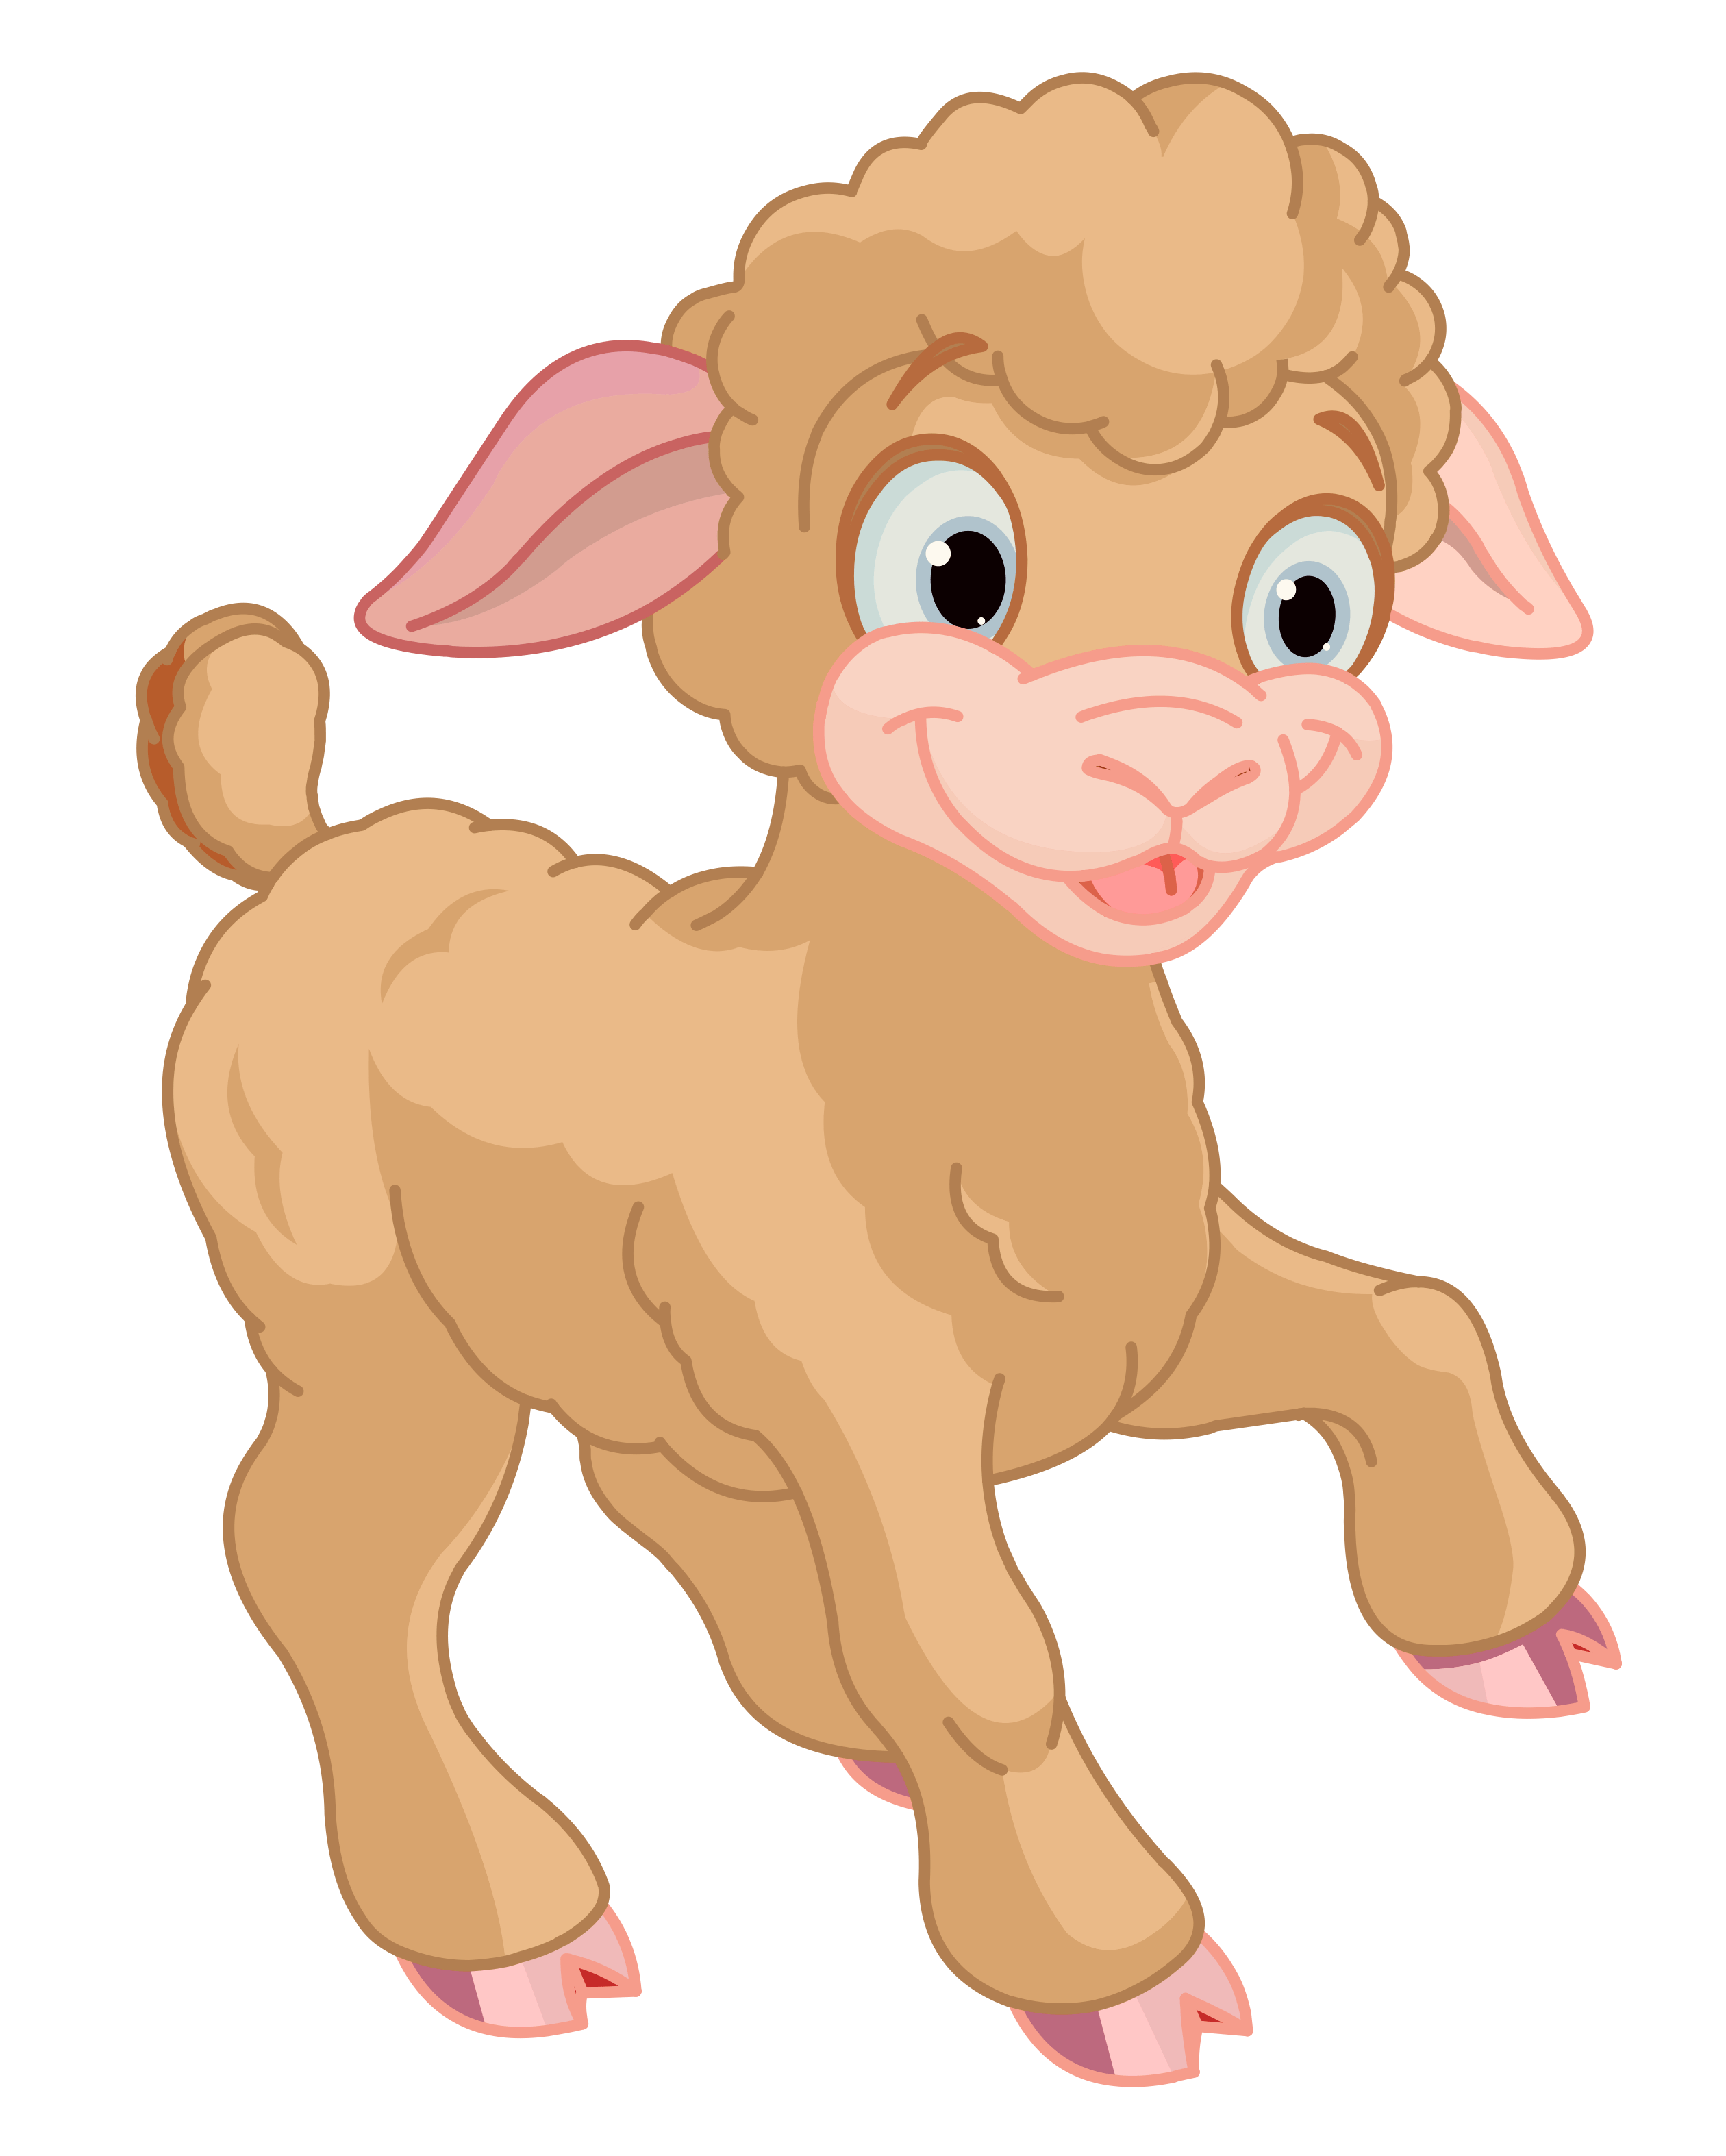 2520x3147 Easter Lamb Clipart Merry Christmas And Happy New Year 2018